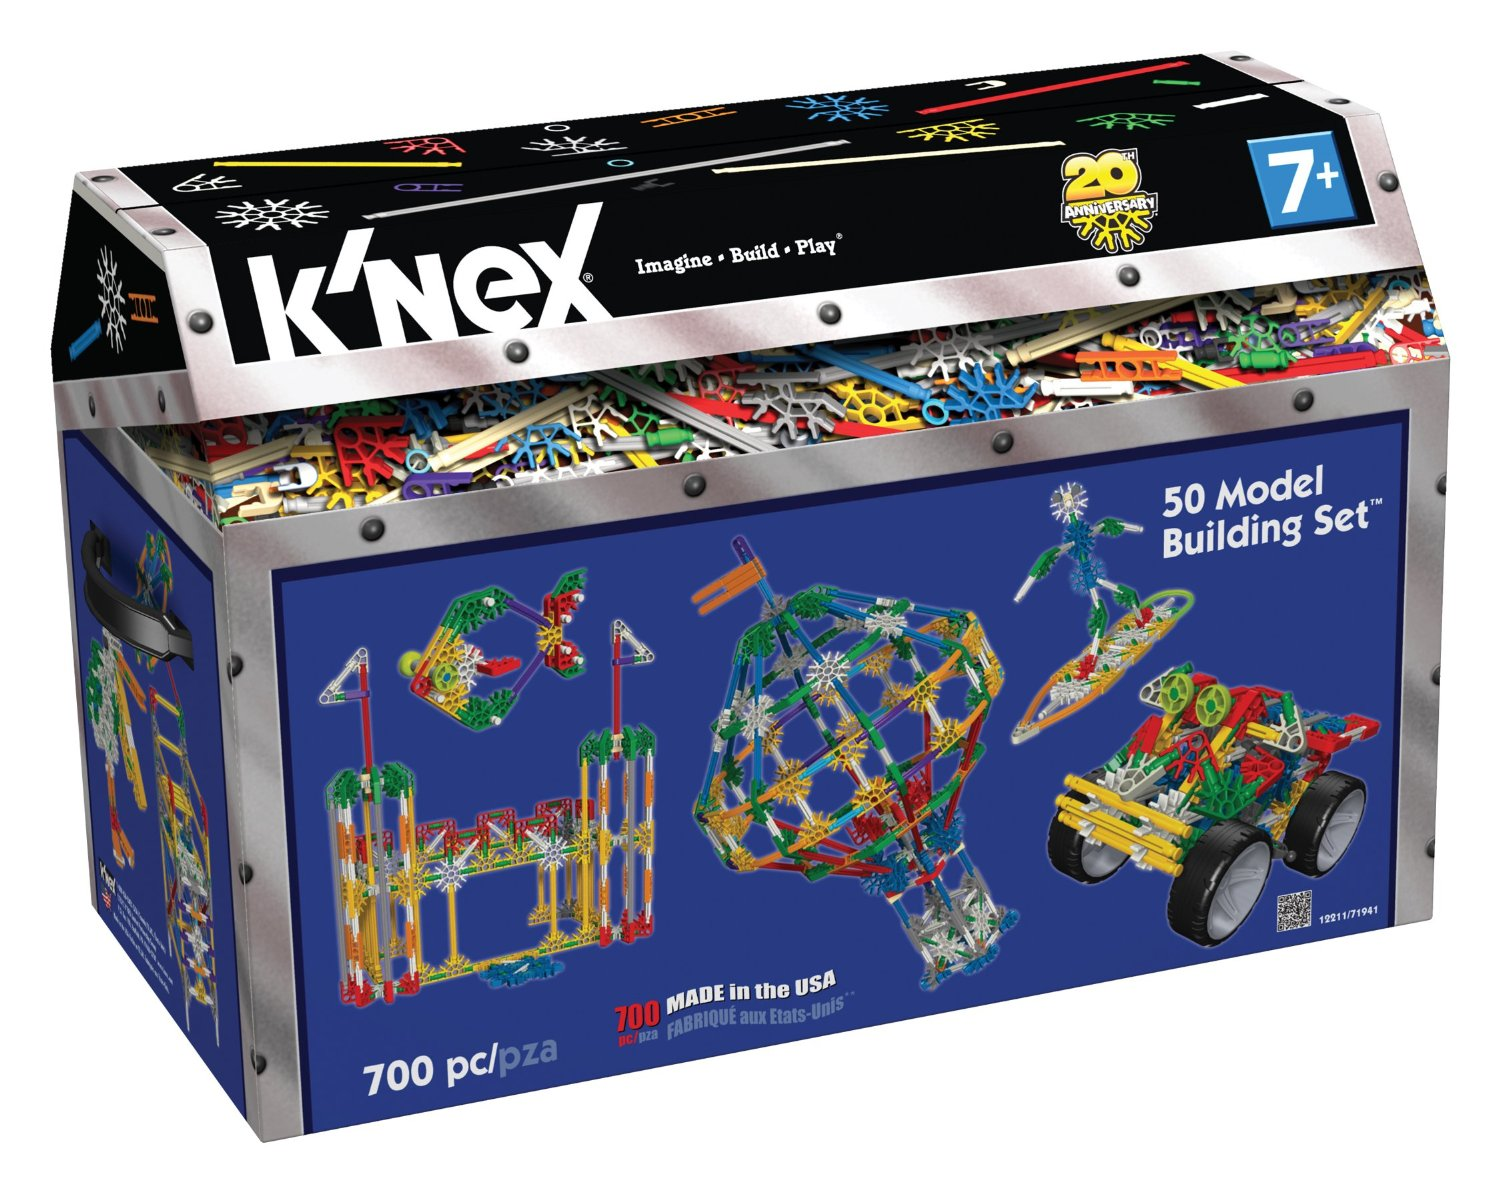 Toy Building Set For Boys : Building toys for boys and girls top ten holiday lists